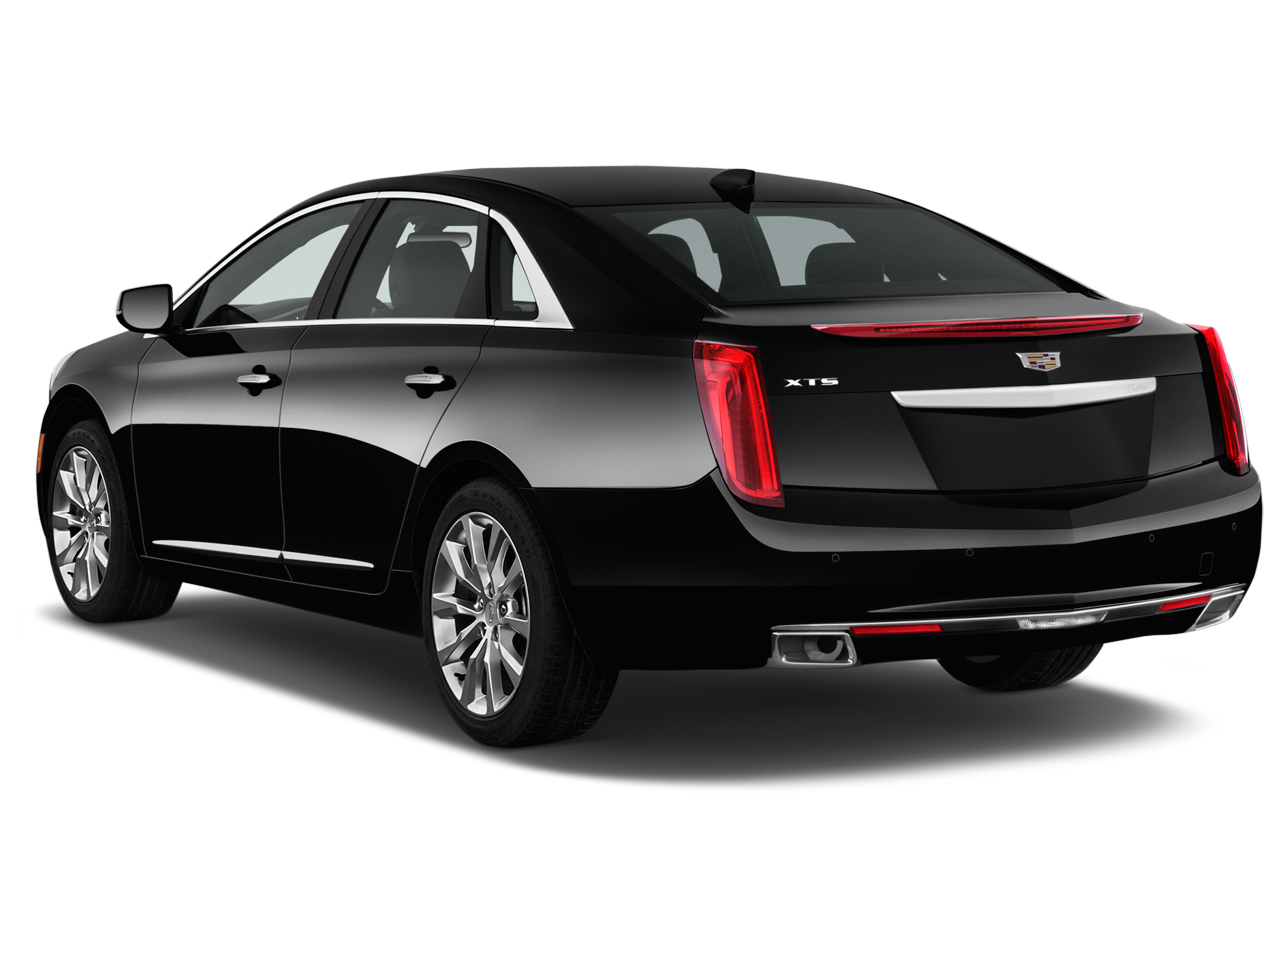 Car Pictures List for Cadillac XTS 2018 3.6L Luxury (UAE ...